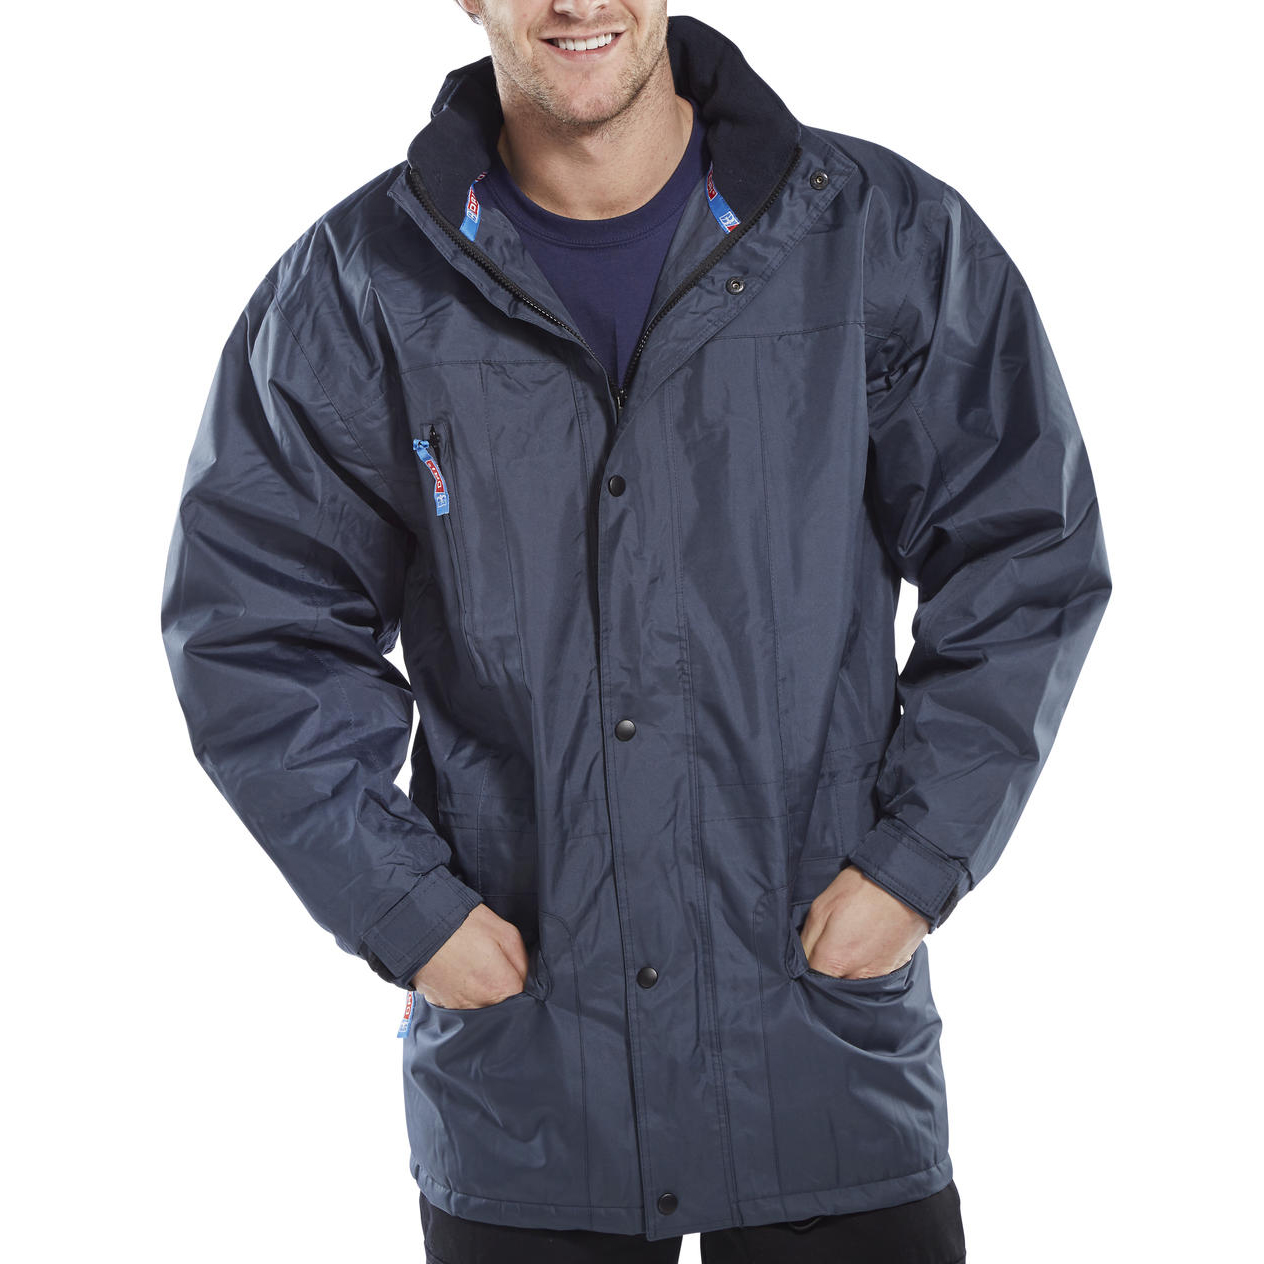 B-Dri Weatherproof Guardian Jacket with Concealed Hood XL Navy Blue Ref GU88PNXL *Up to 3 Day Leadtime*